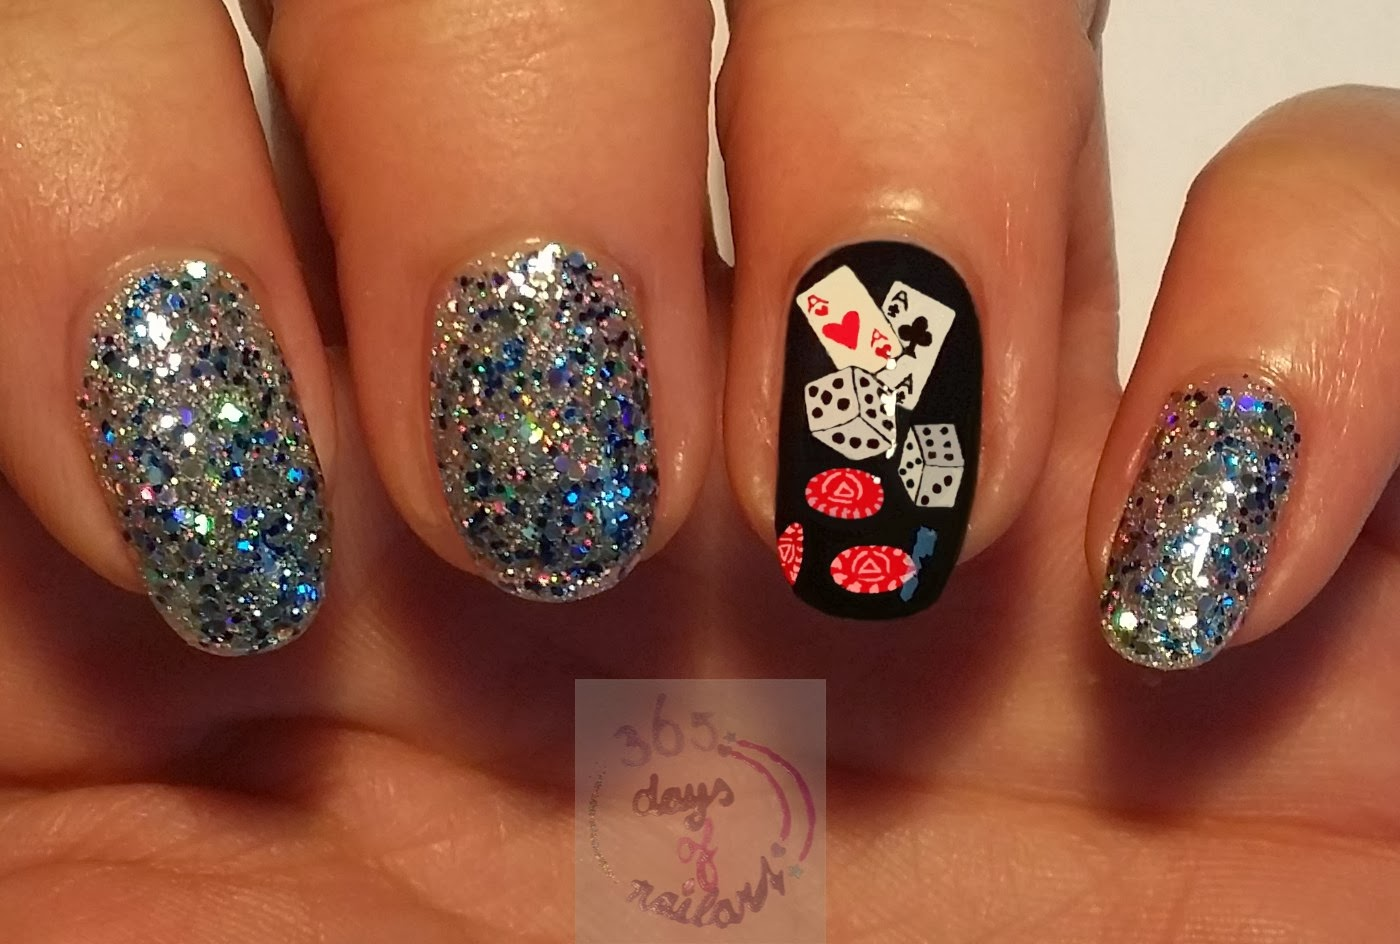 365+ days of nail art: Day 284) Viva Las Vegas nail art